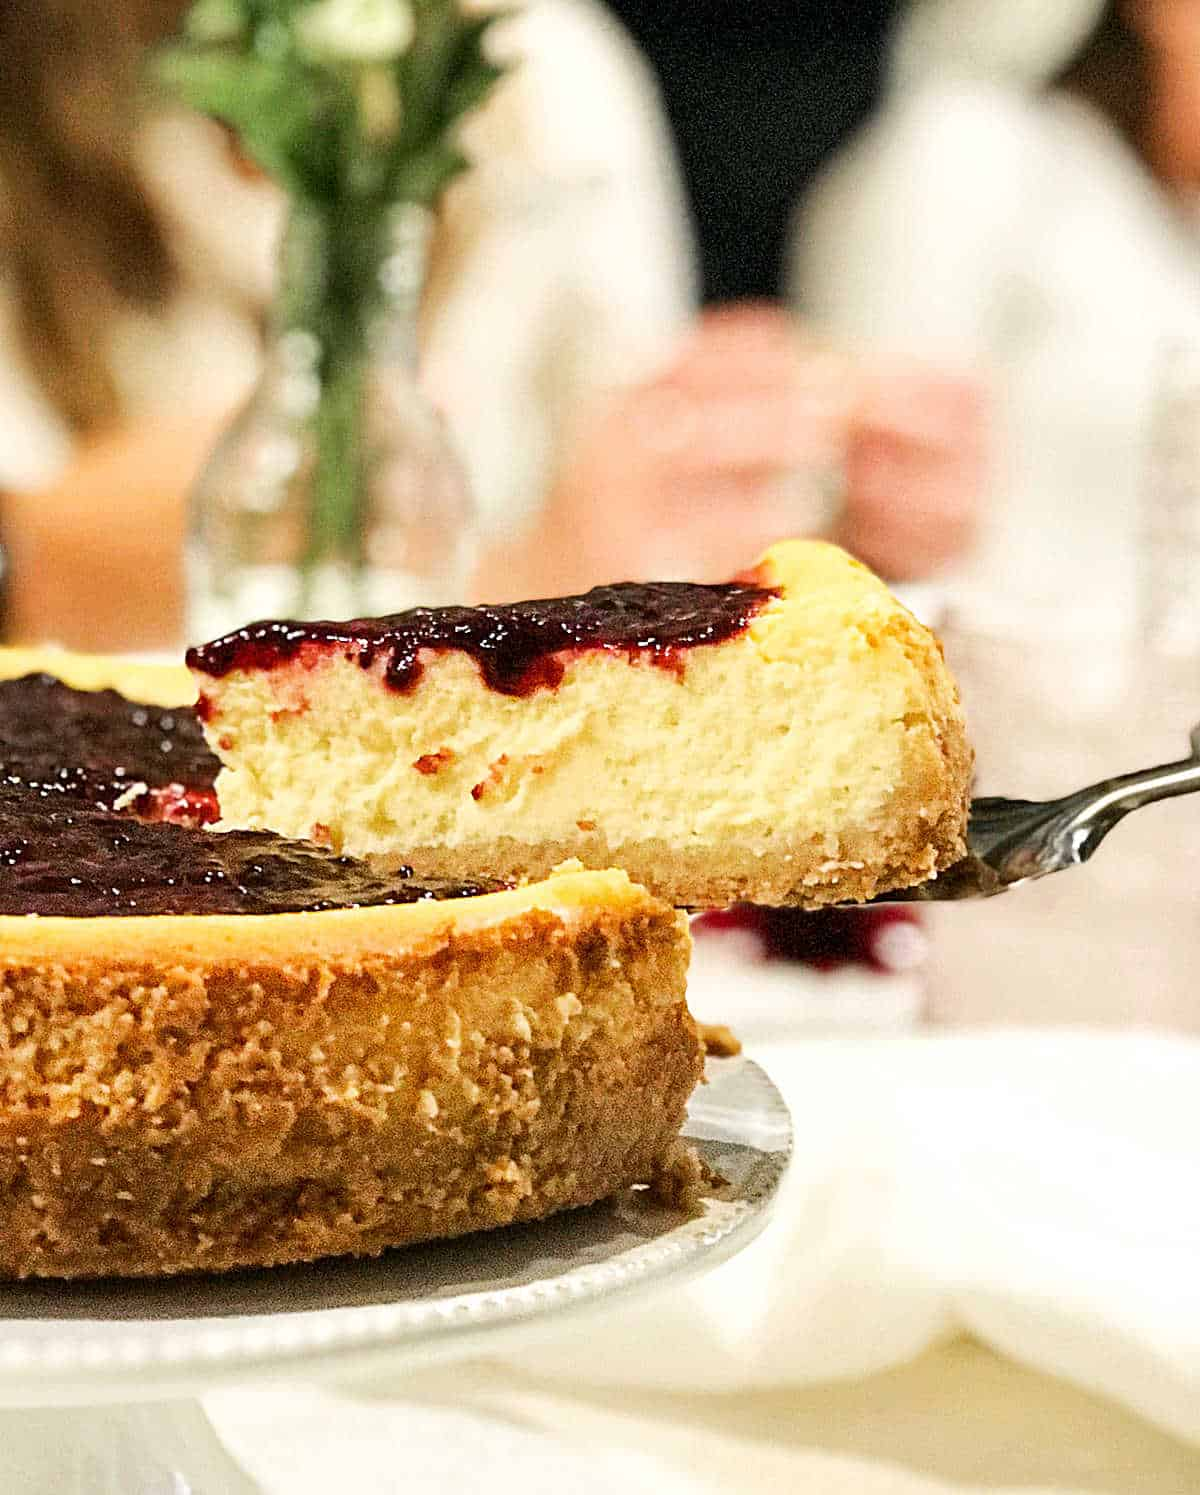 Round cheesecake in table with people in background, a slice being lifted with a cake server